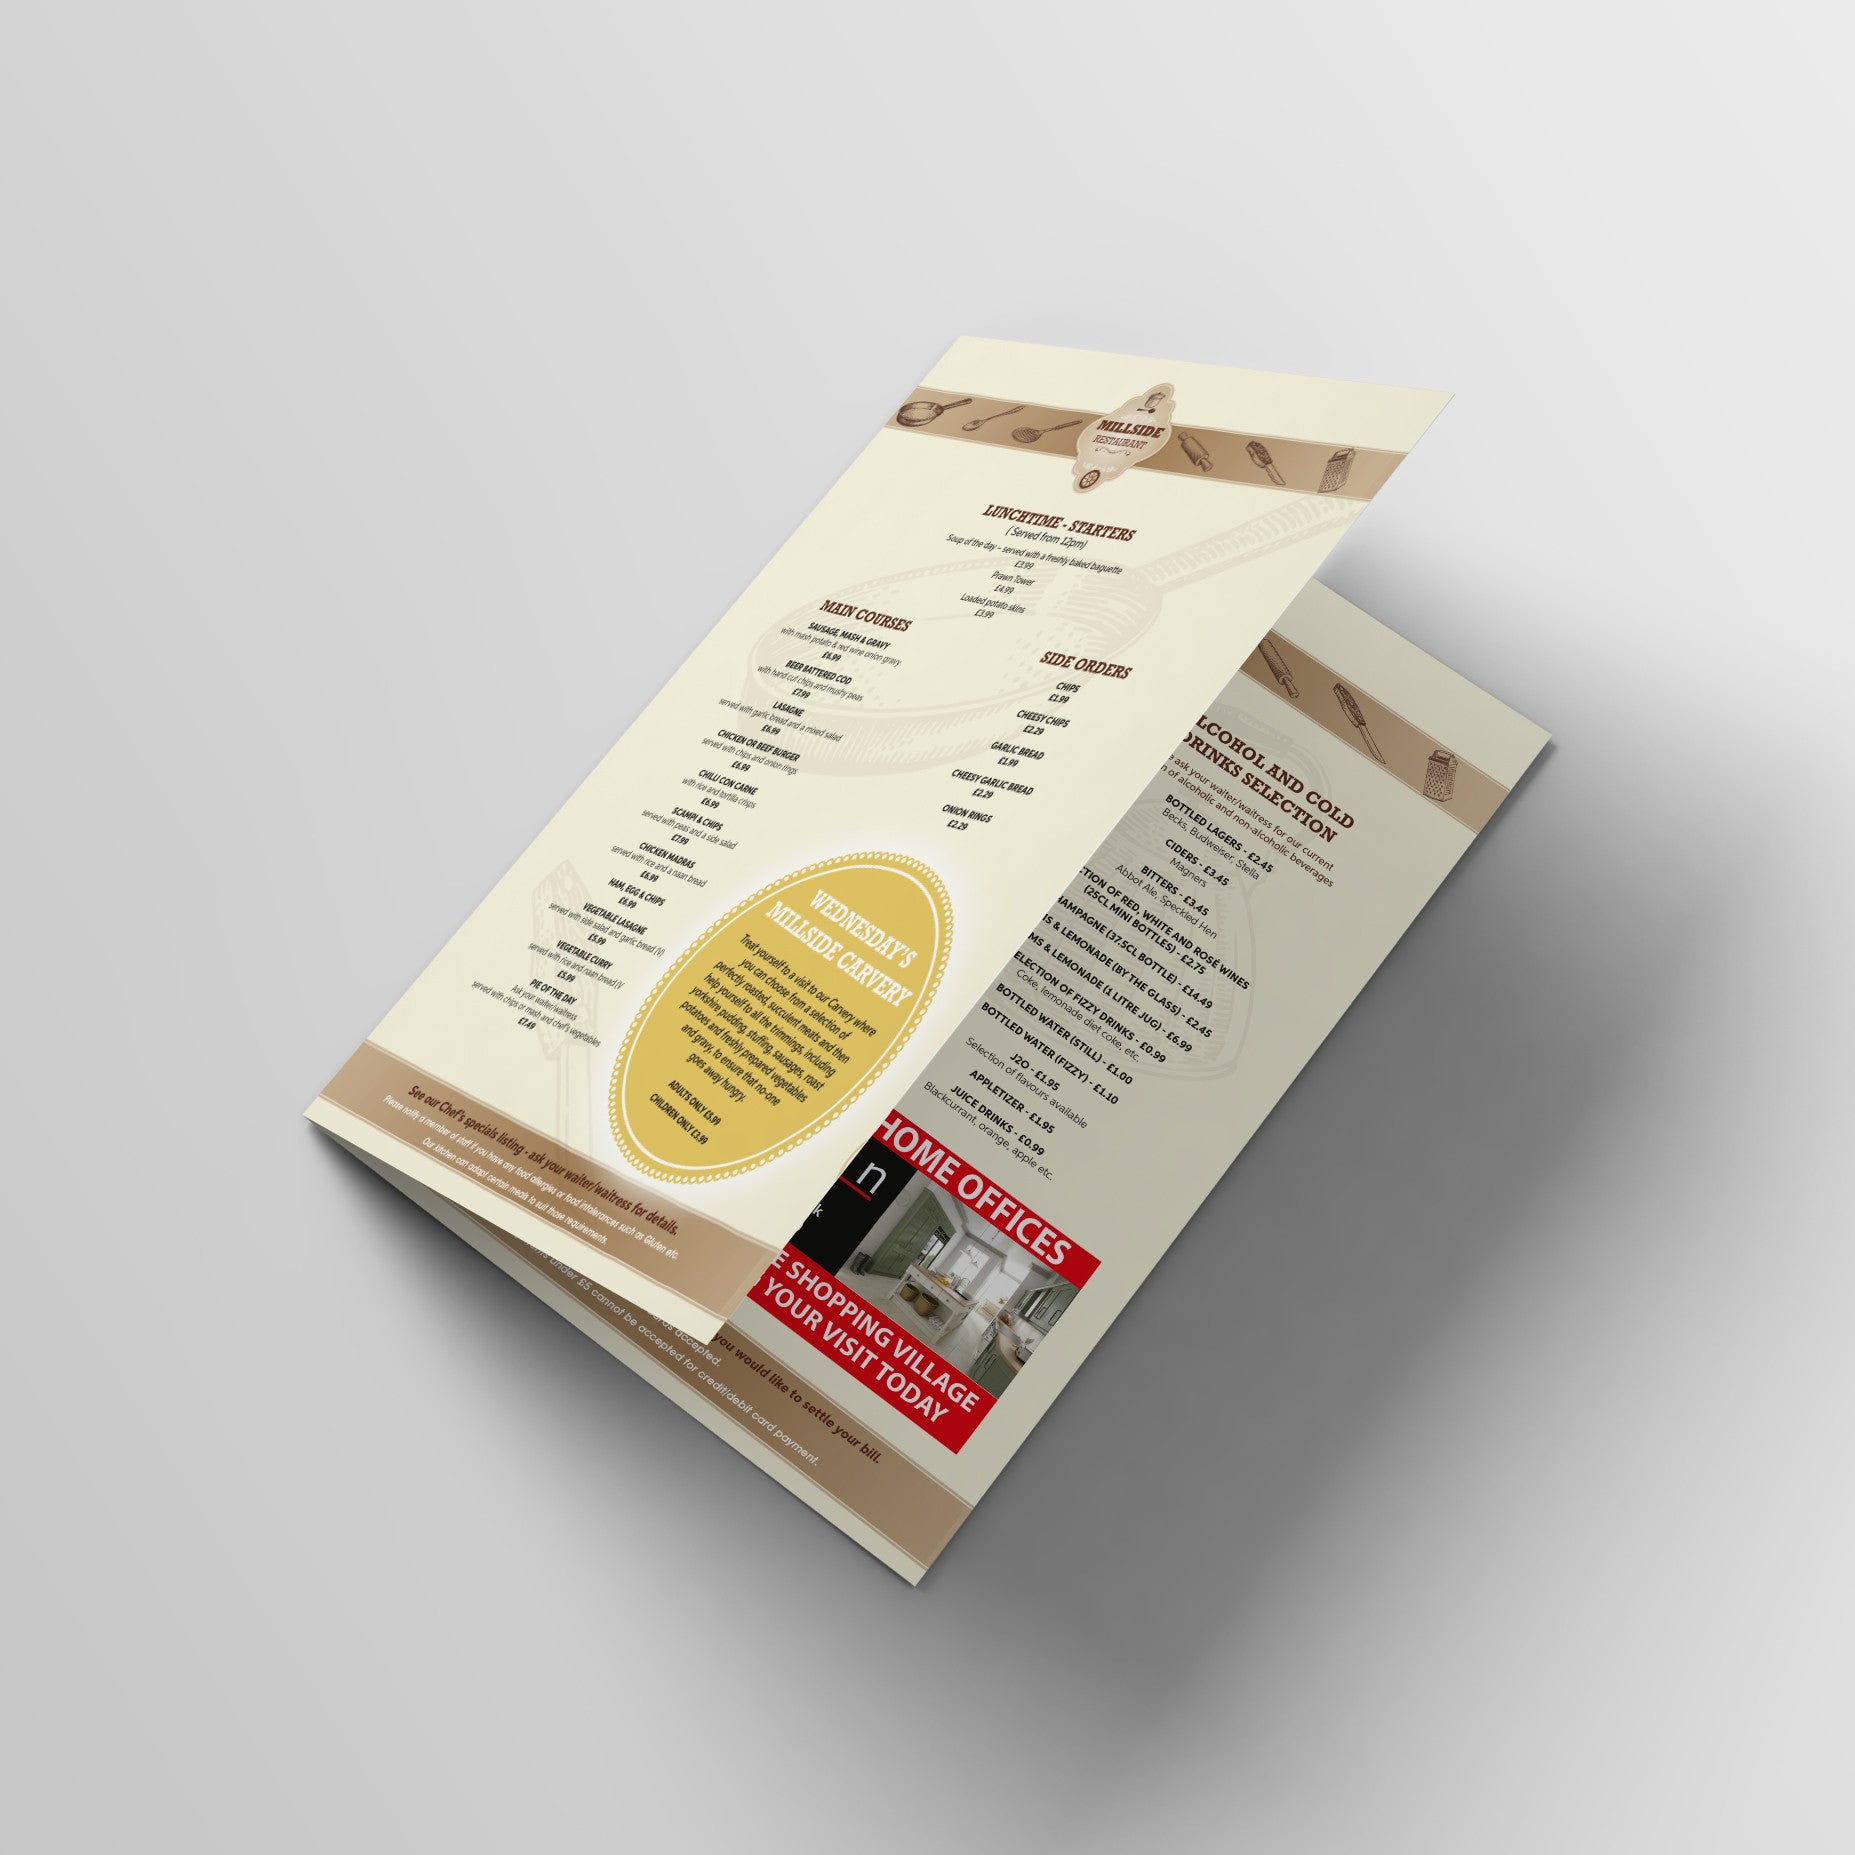 Creative Personalised Printed Designed Brochures Print Your Logo, Artwork, Photos Or Designs Perfect for  Office, Businesses, Restaurants, Pubs, Cafes, Bars And Parties